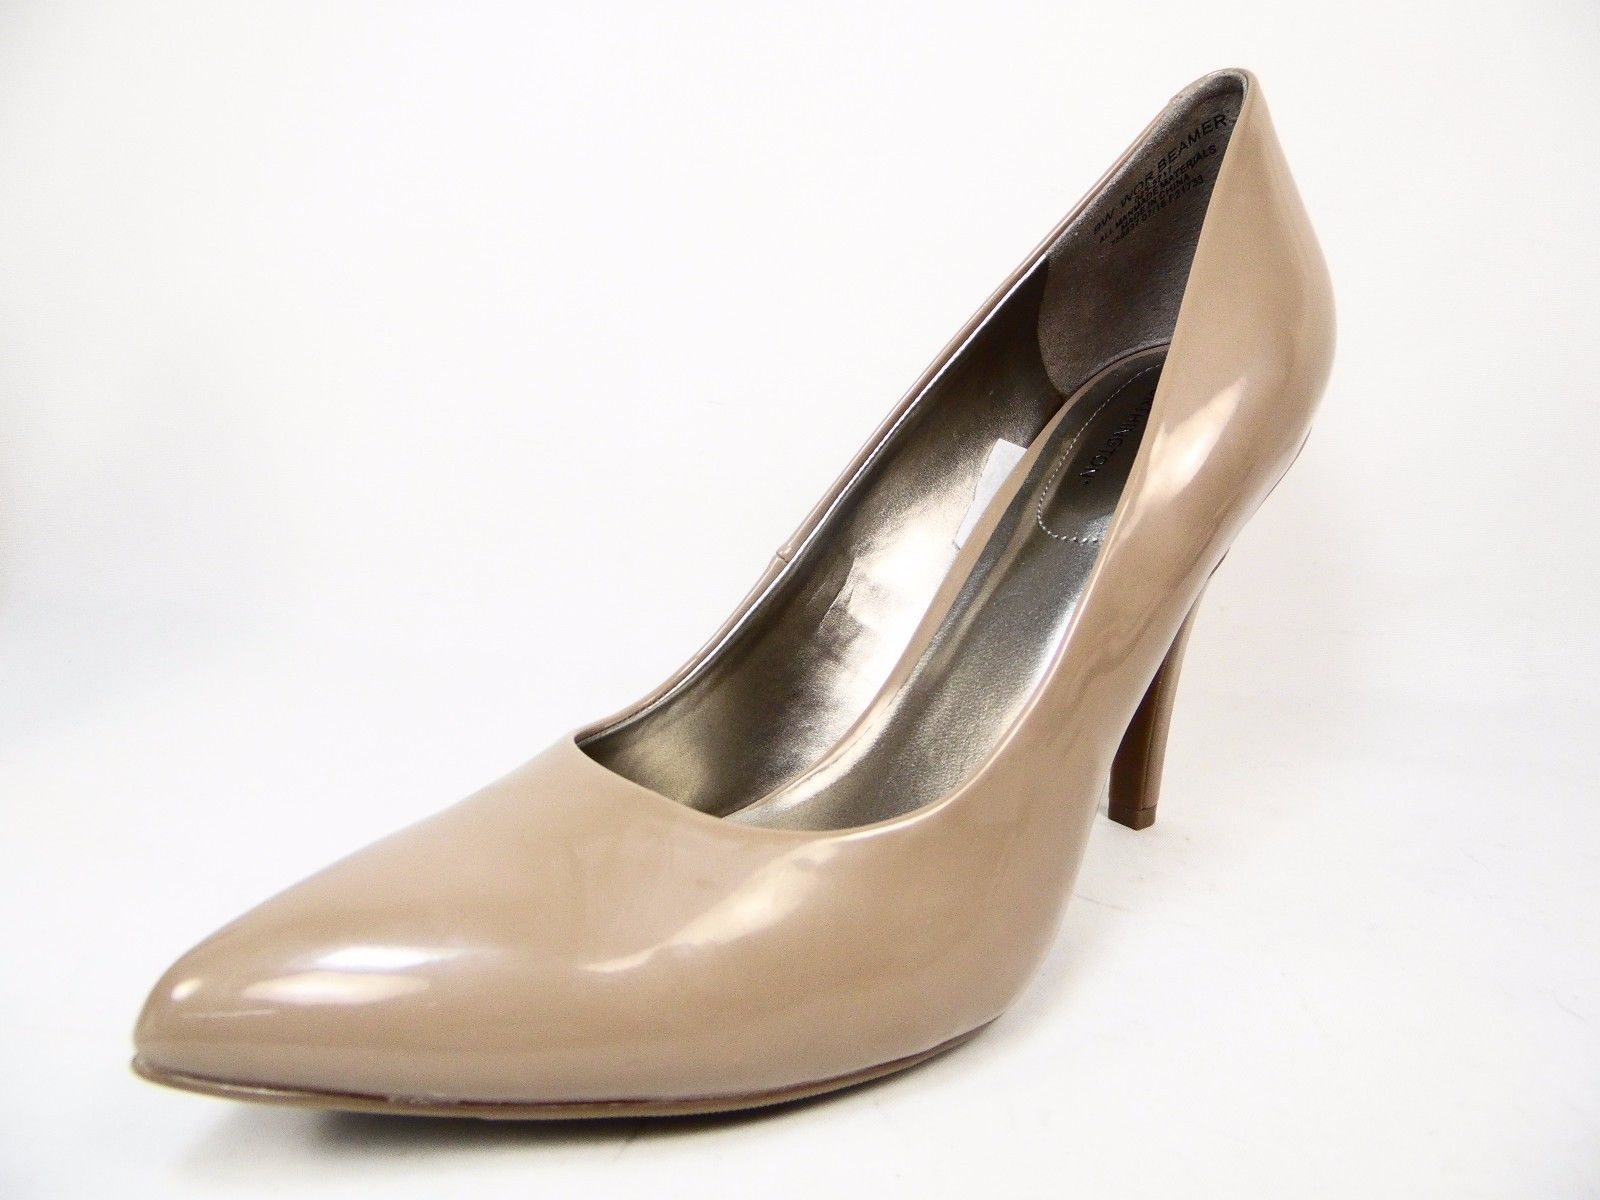 Worthington Beamer Pointed-Toe Pumps Taupe and similar items